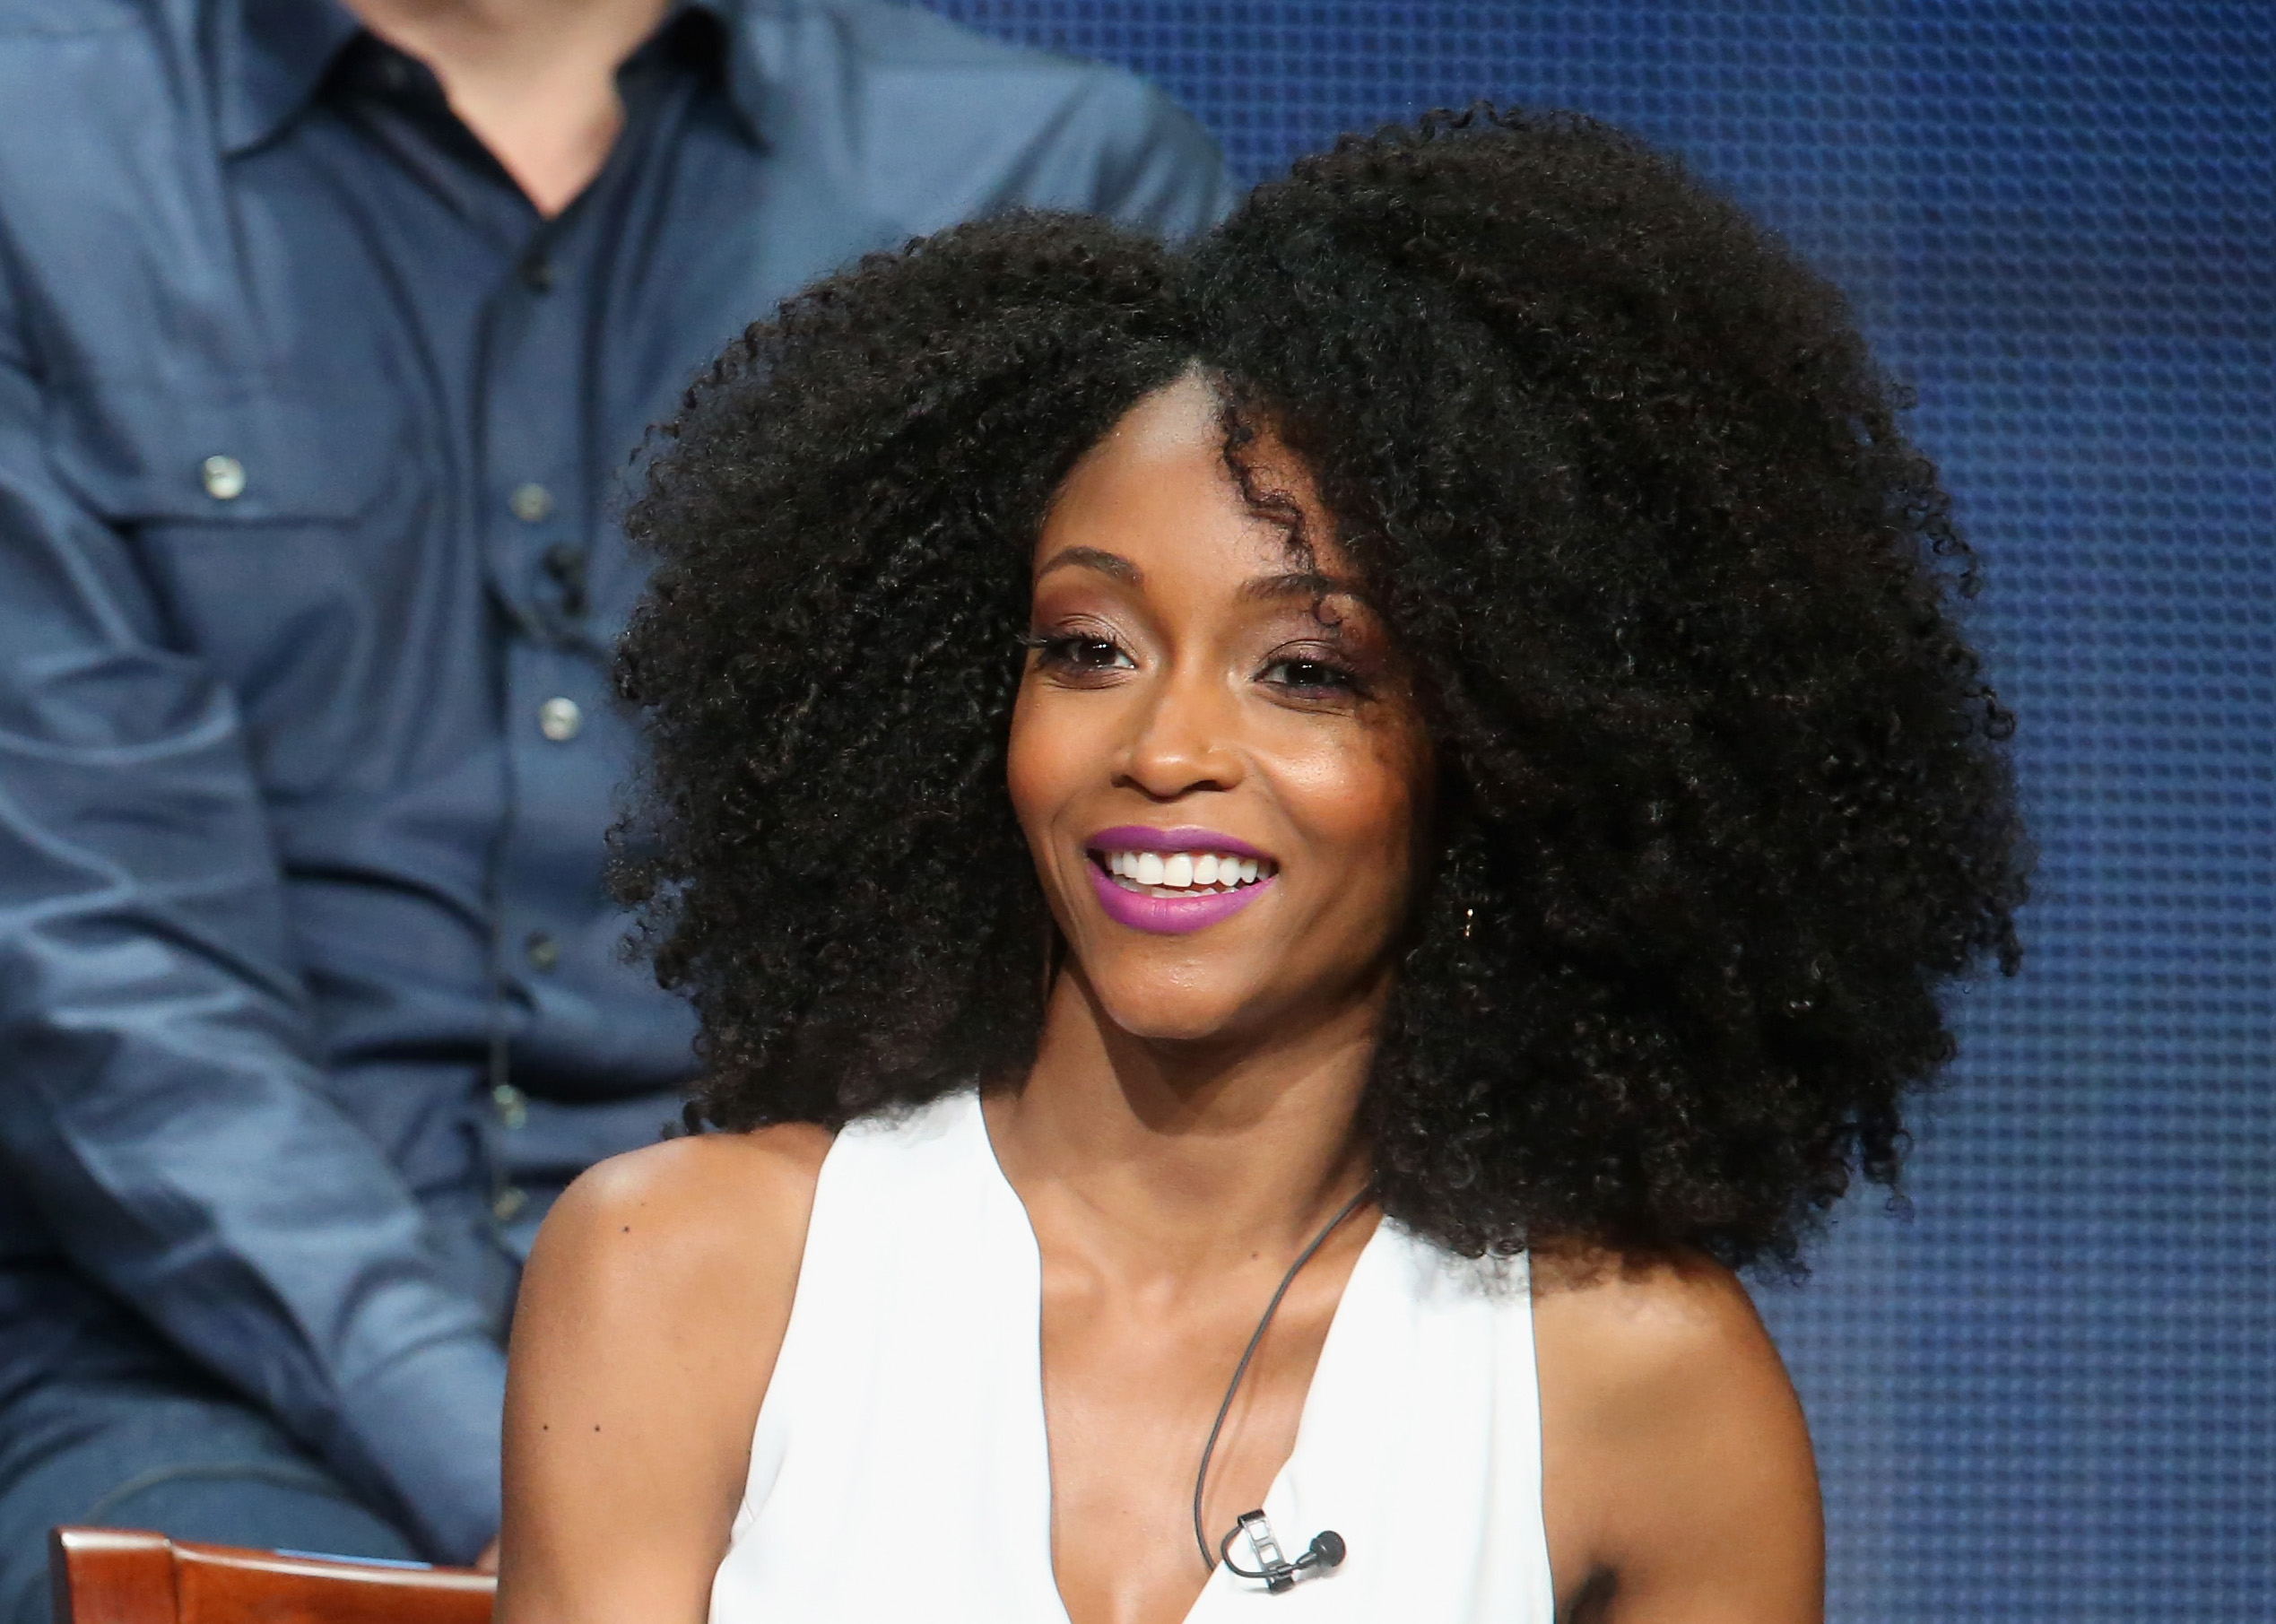 Some Curly Bangs Inspo in Case You, Too, Are Scissor-Happy Right Now